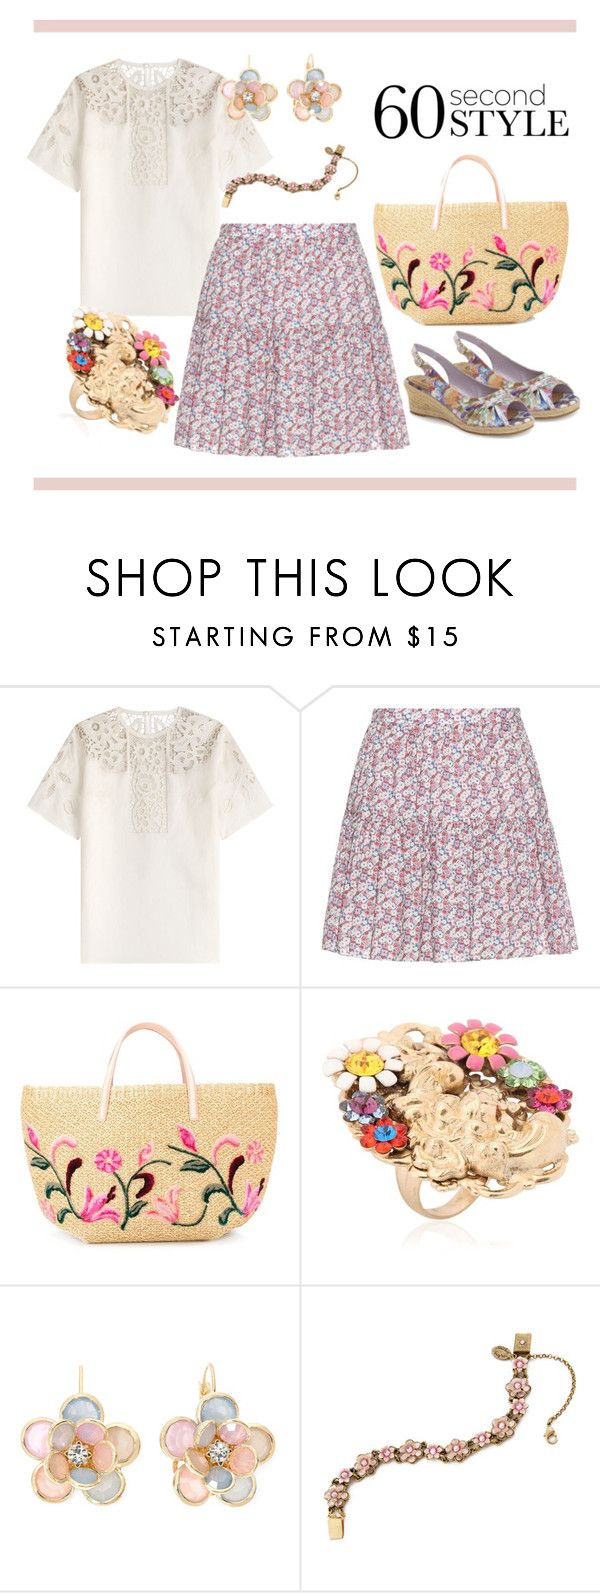 """""""НС - Сельский стиль 3"""" by look-comskaya ❤ liked on Polyvore featuring Valentino, Yves Saint Laurent, Ermanno Scervino, Halo & Co., Mixit, Bella Vita, women's clothing, women, female and woman"""